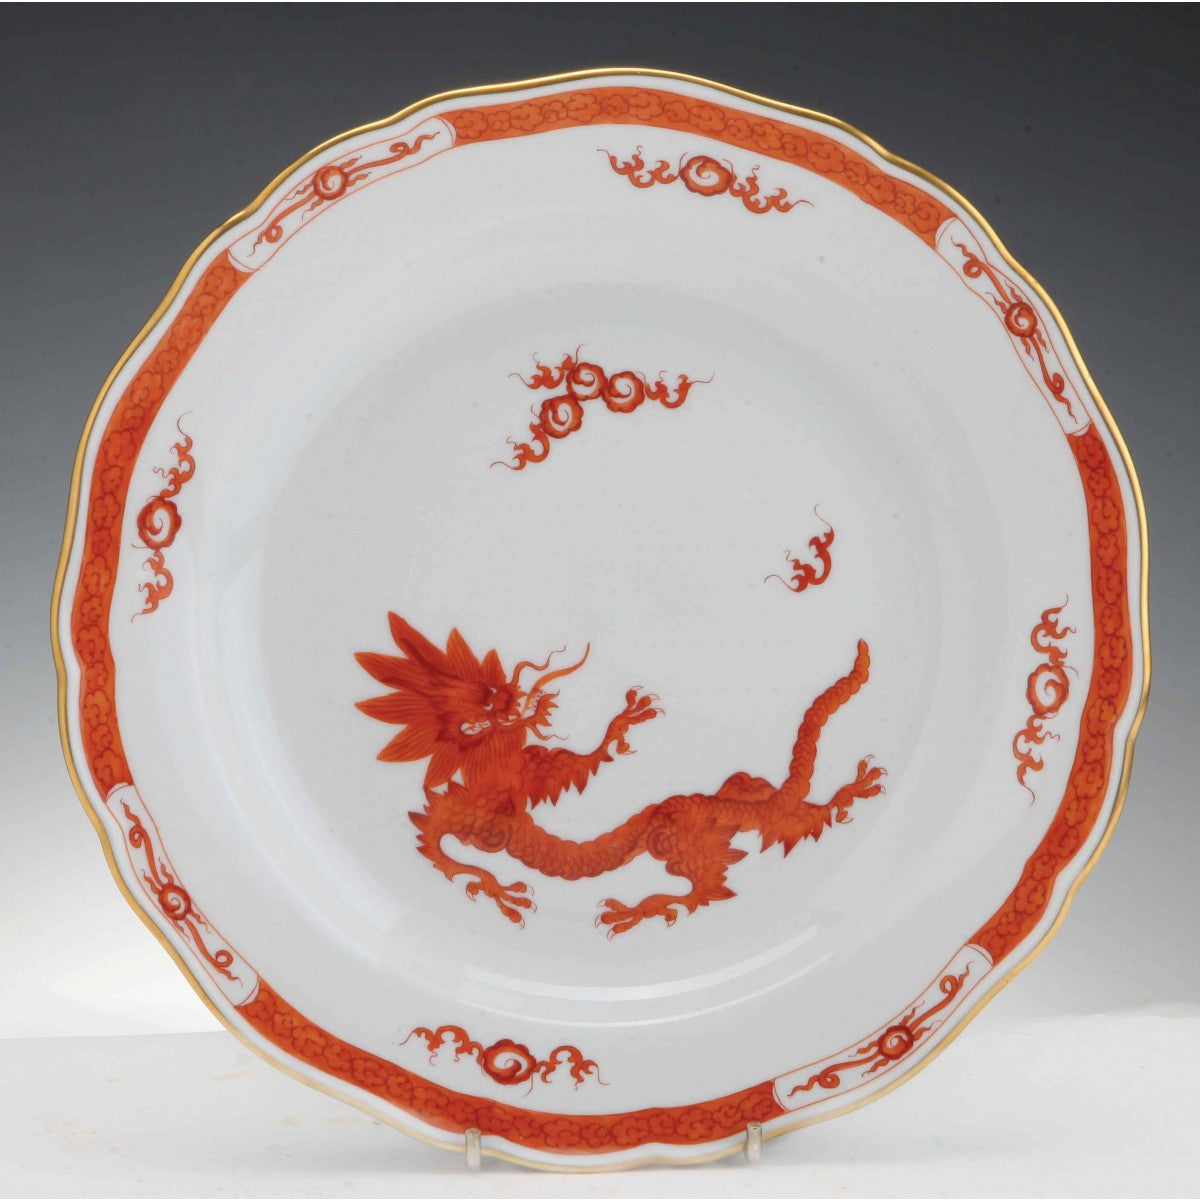 Red Dragon Meissen Porcelain Plate